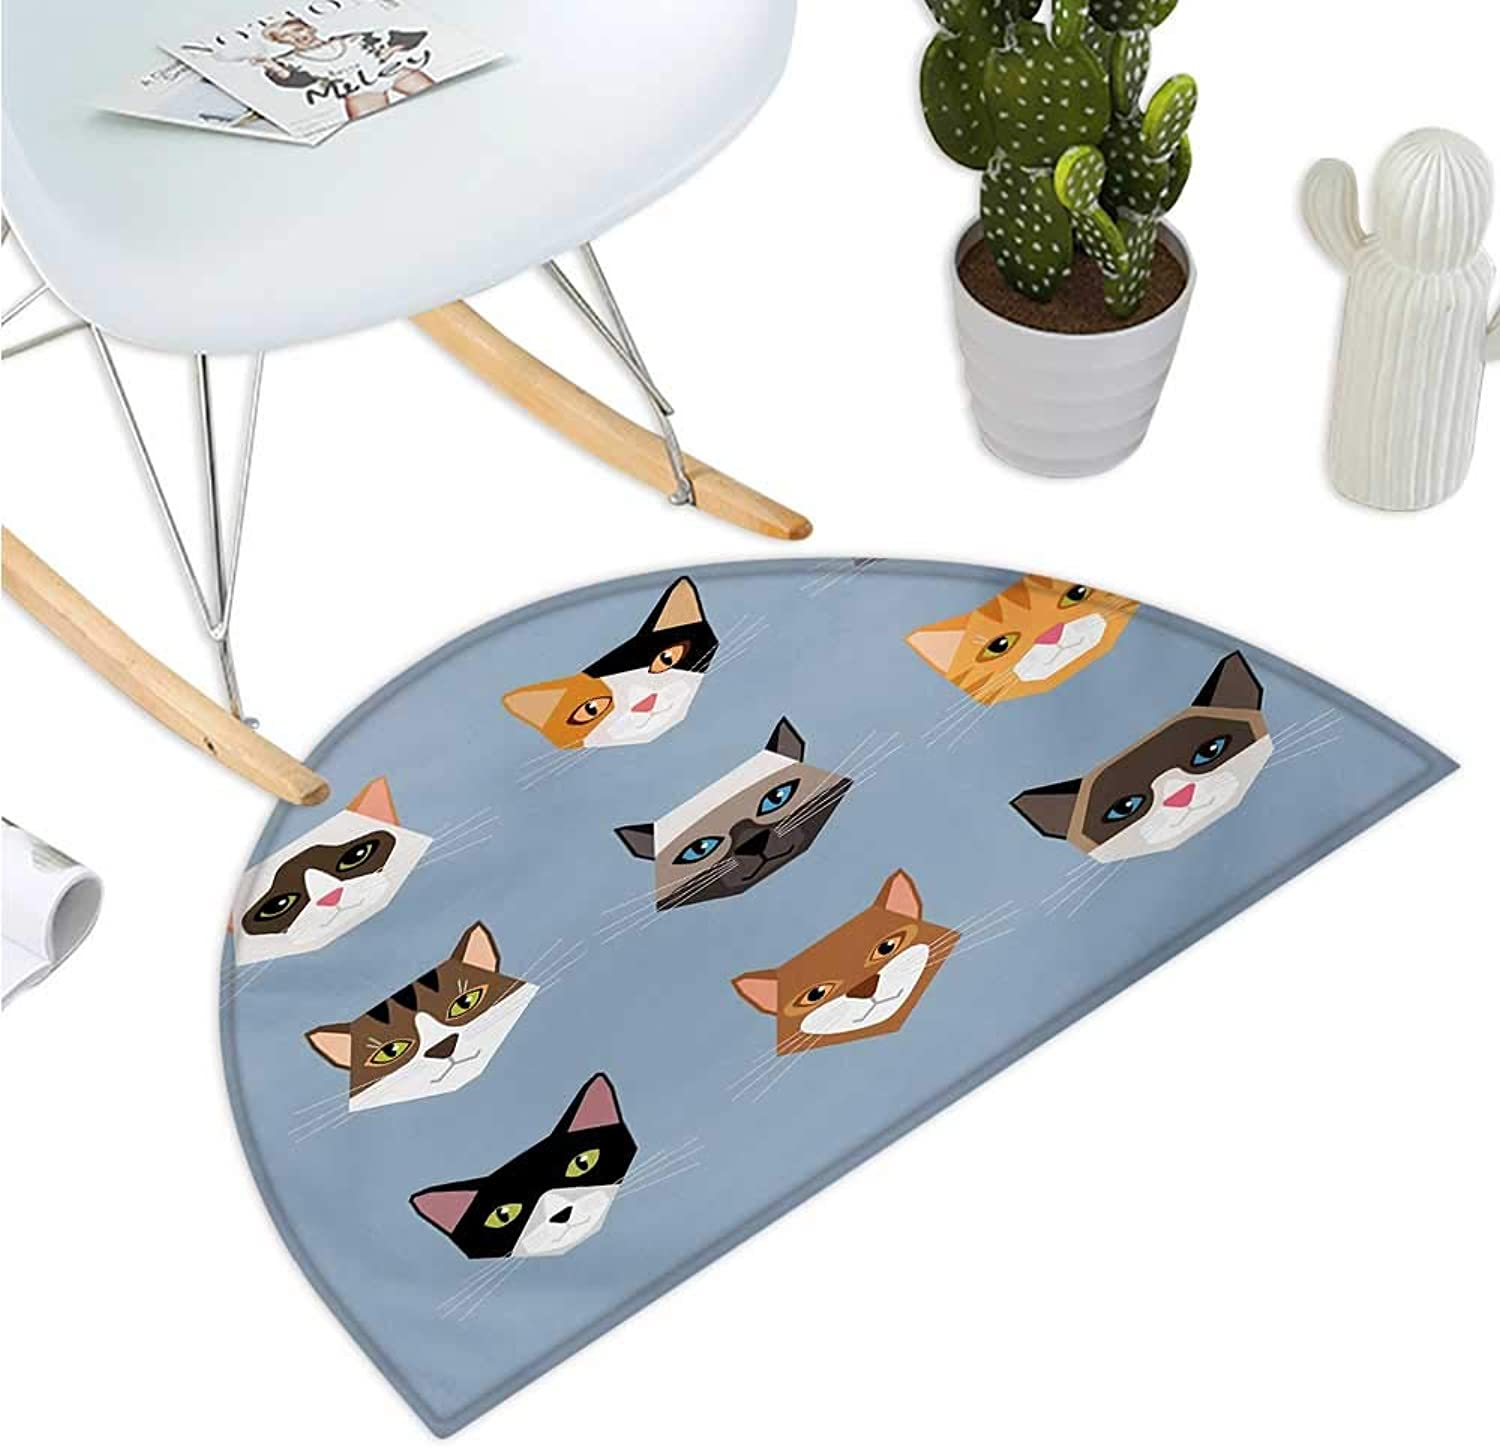 Cat Semicircle Doormat Animal Portrait Set with Cute Kittens Face Whiskers Contemporary Caricature Pattern Entry Door Mat H 39.3  xD 59  Multicolor